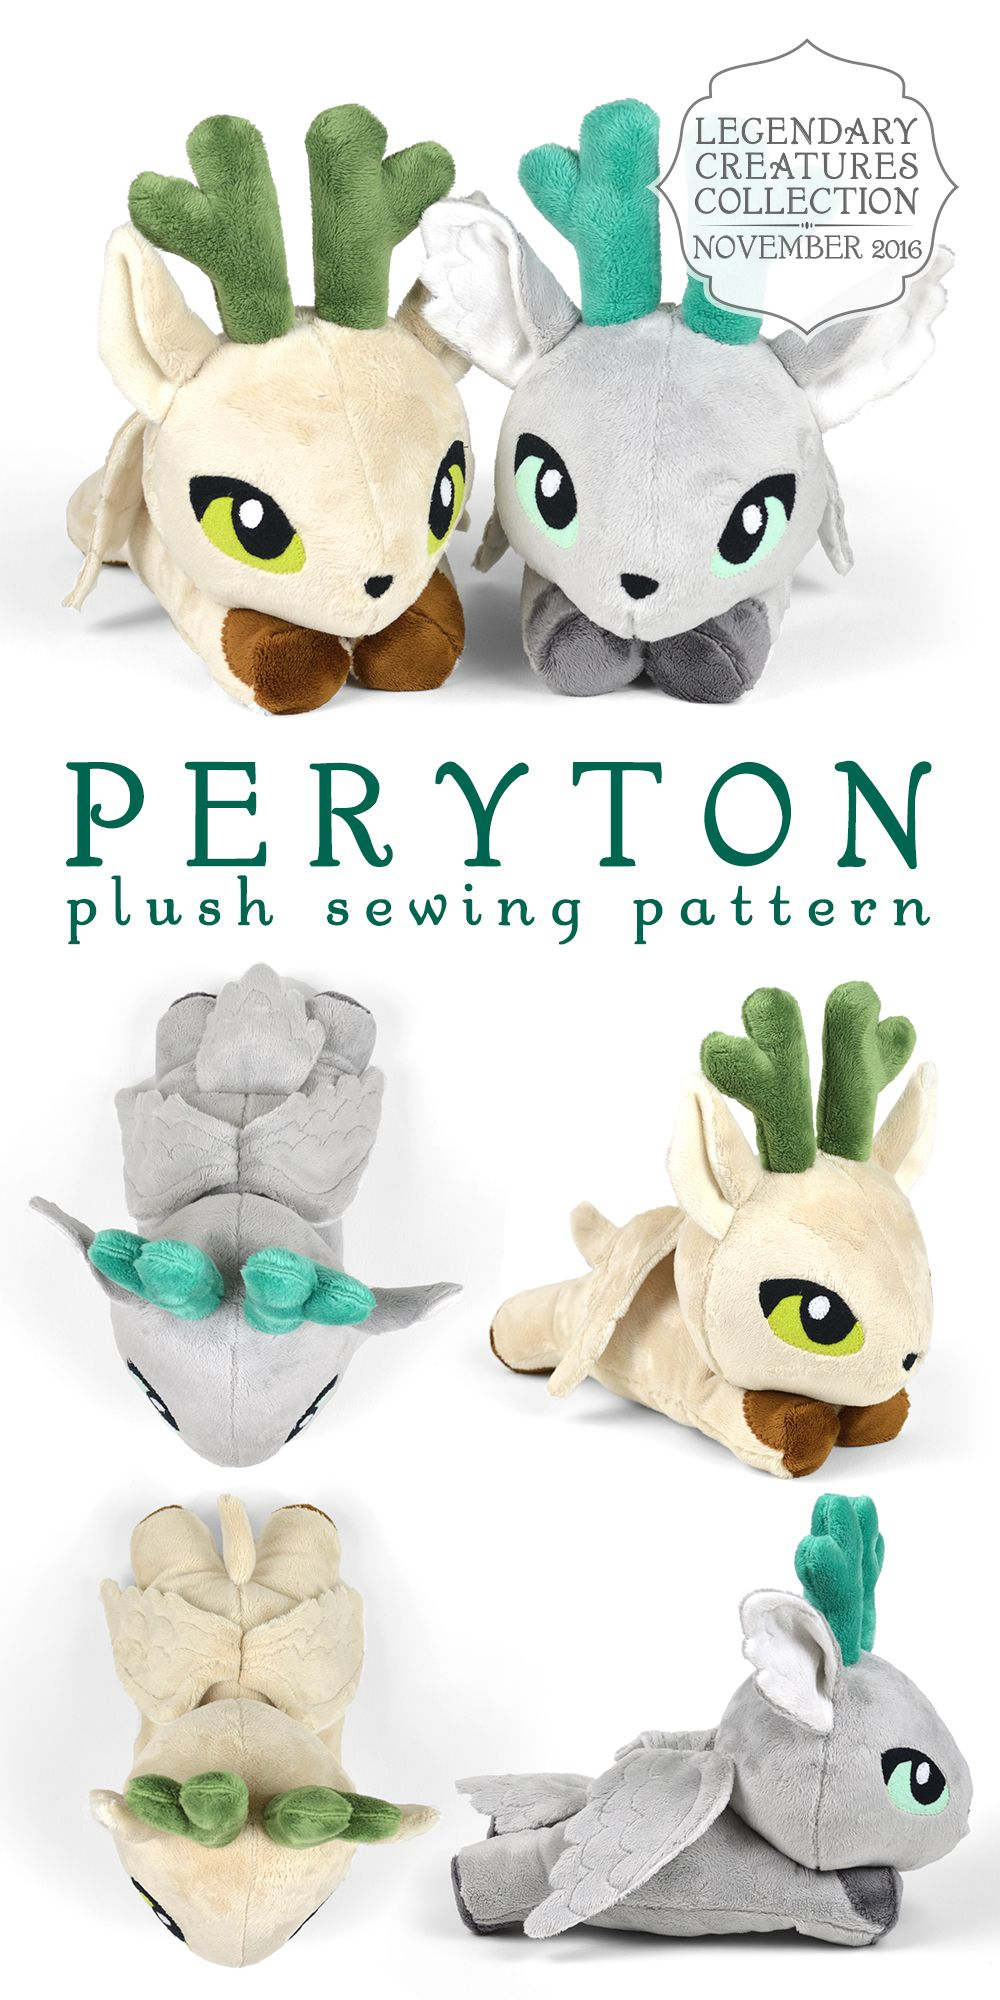 Peryton plush sewing pattern mythical winged deer soft toy stuffed ...